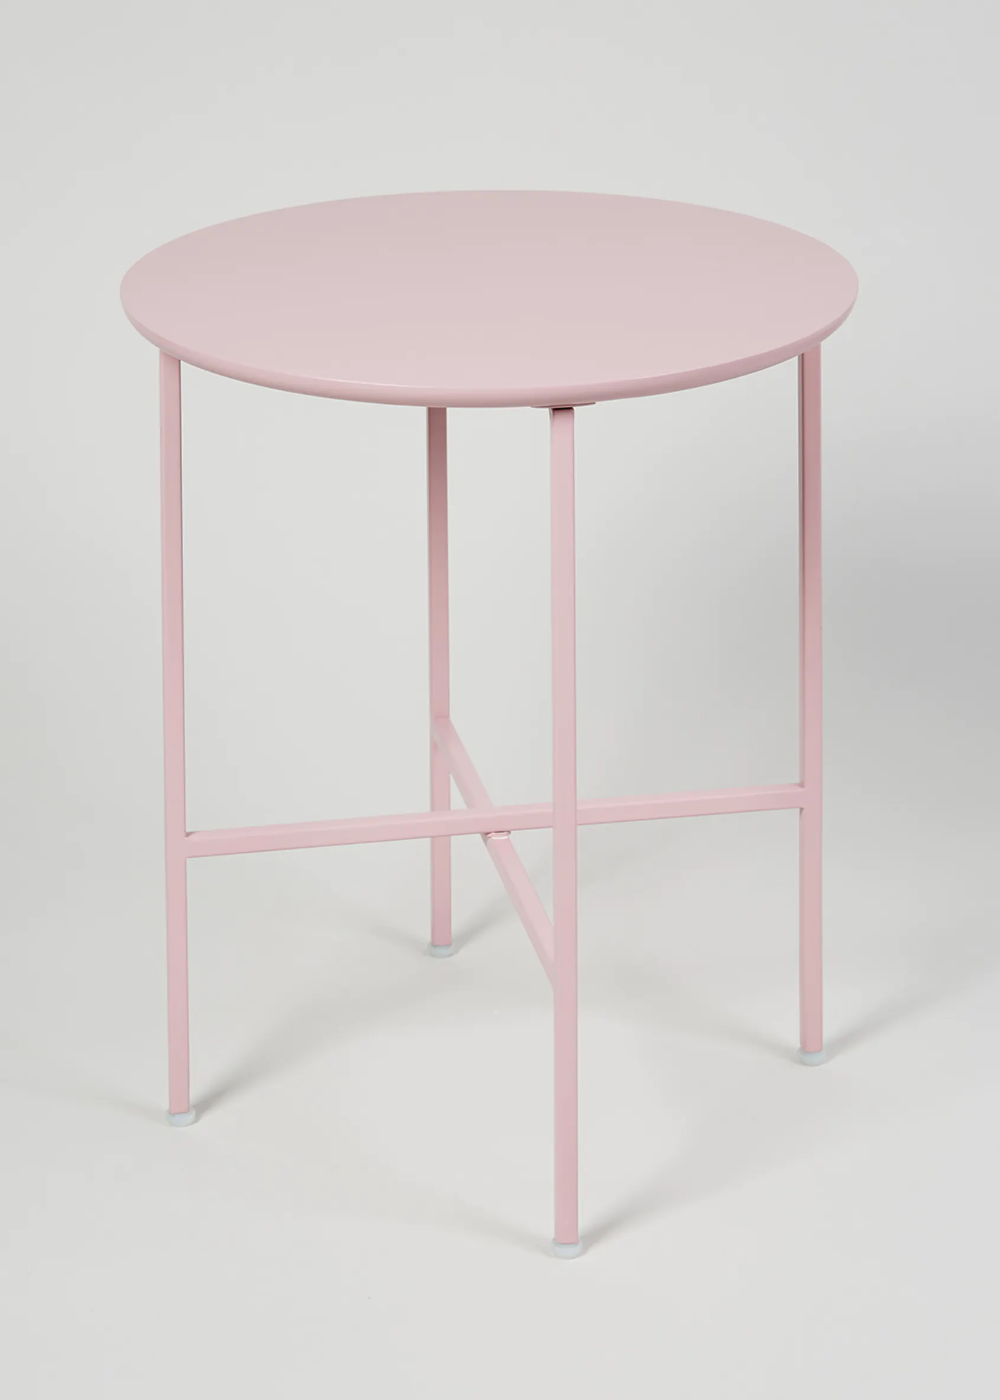 Pink Bedside Table: Cleo Side Table (H40cm X W36cm) – Pink In 2020